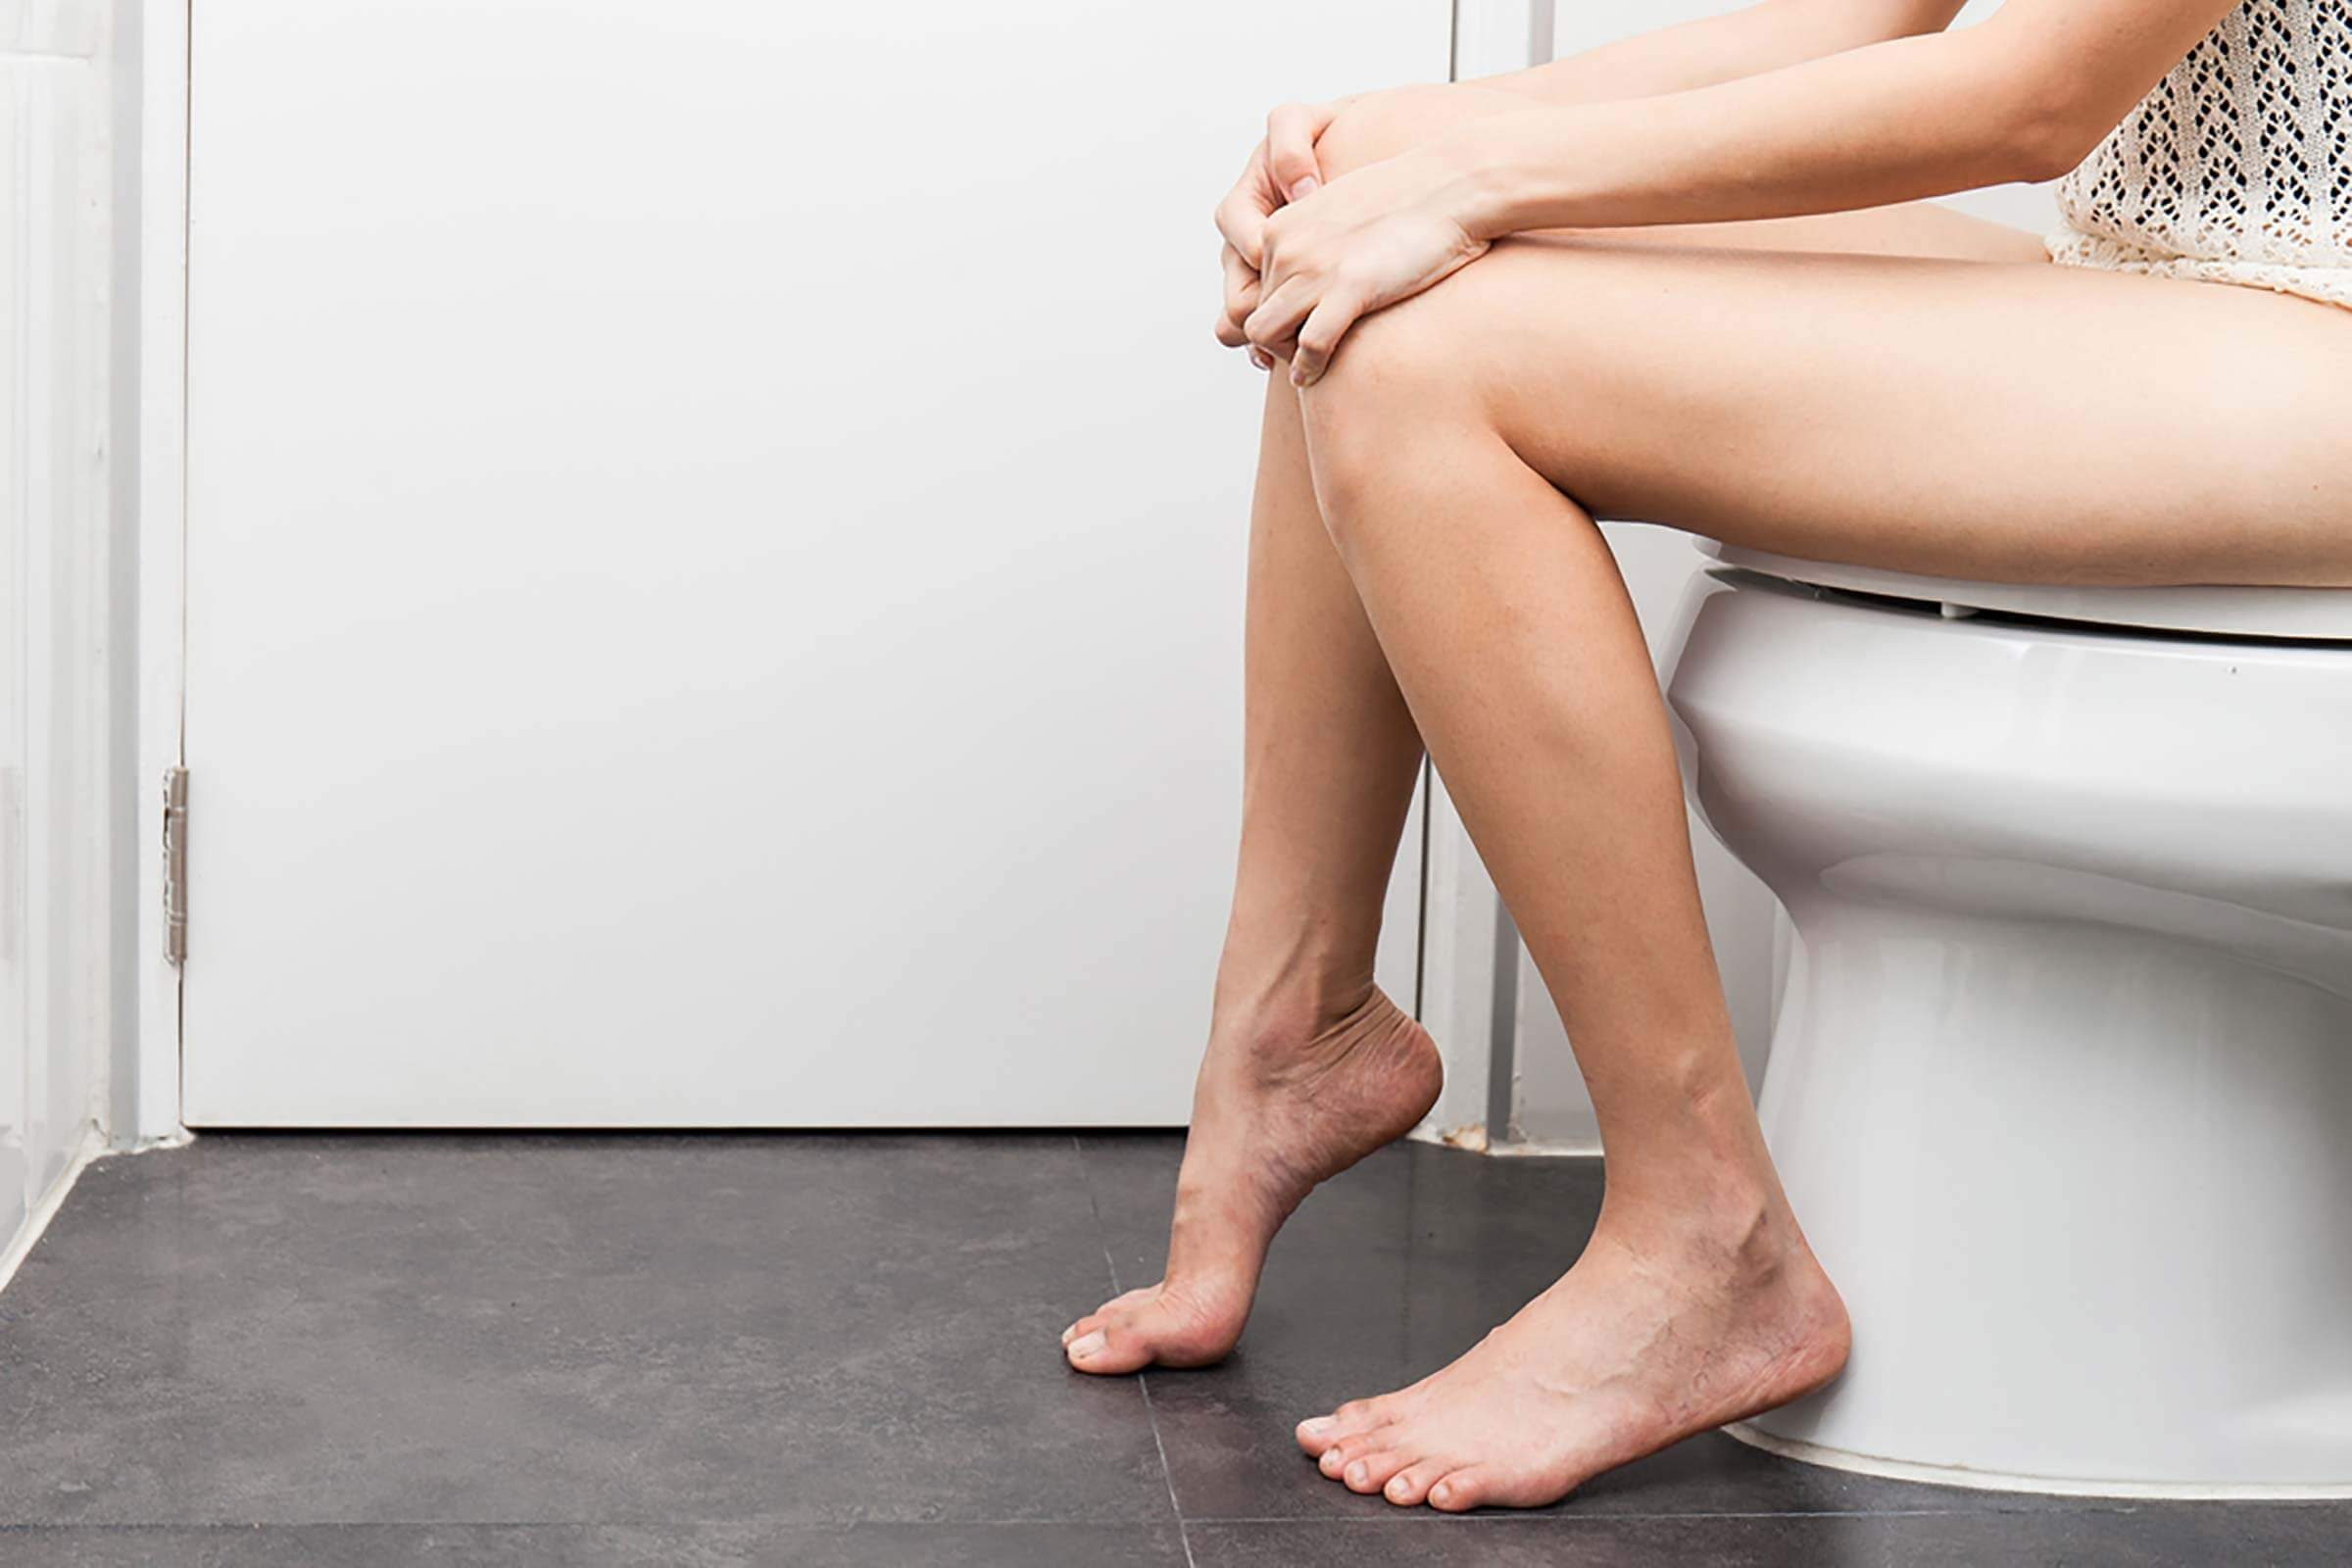 Woman sitting on a toilet in the restroom.